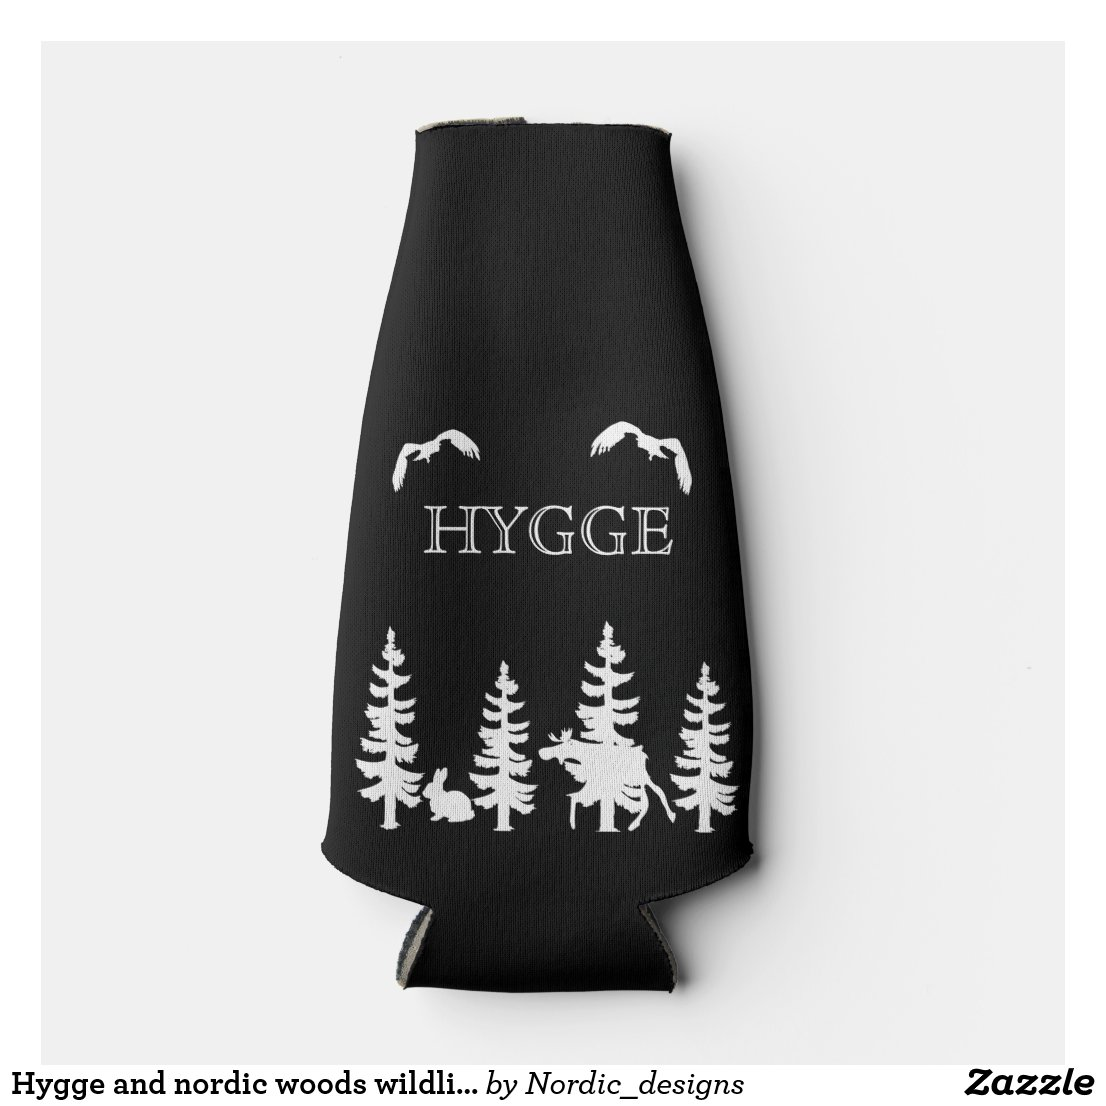 Hygge and nordic woods wildlife silhouettes black